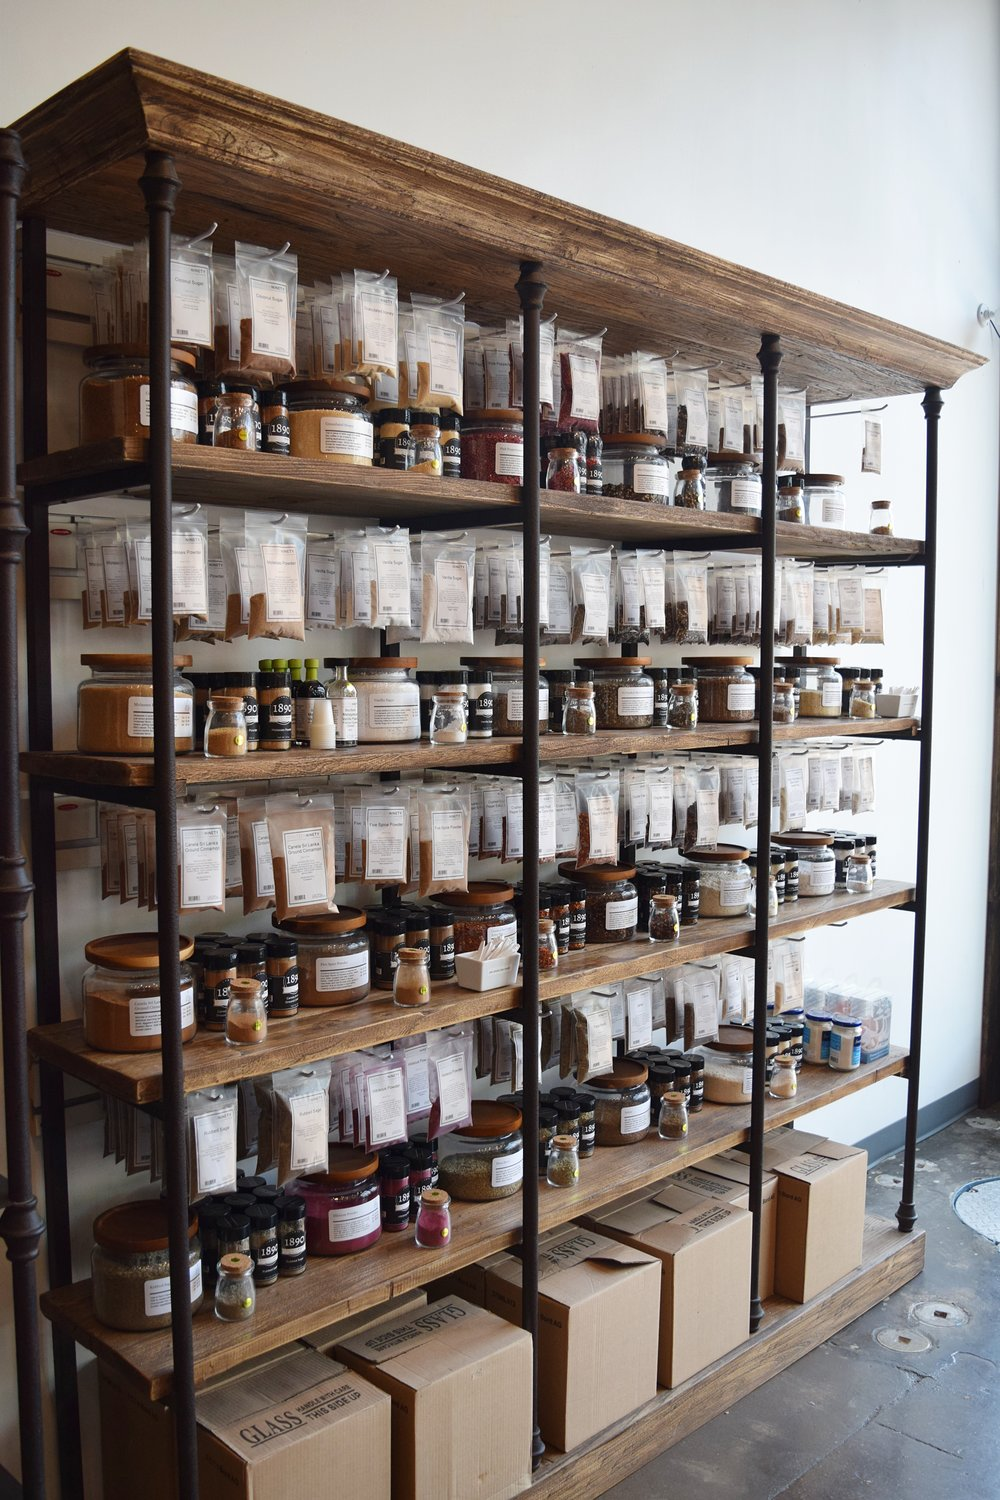 1890 market place spice shelves